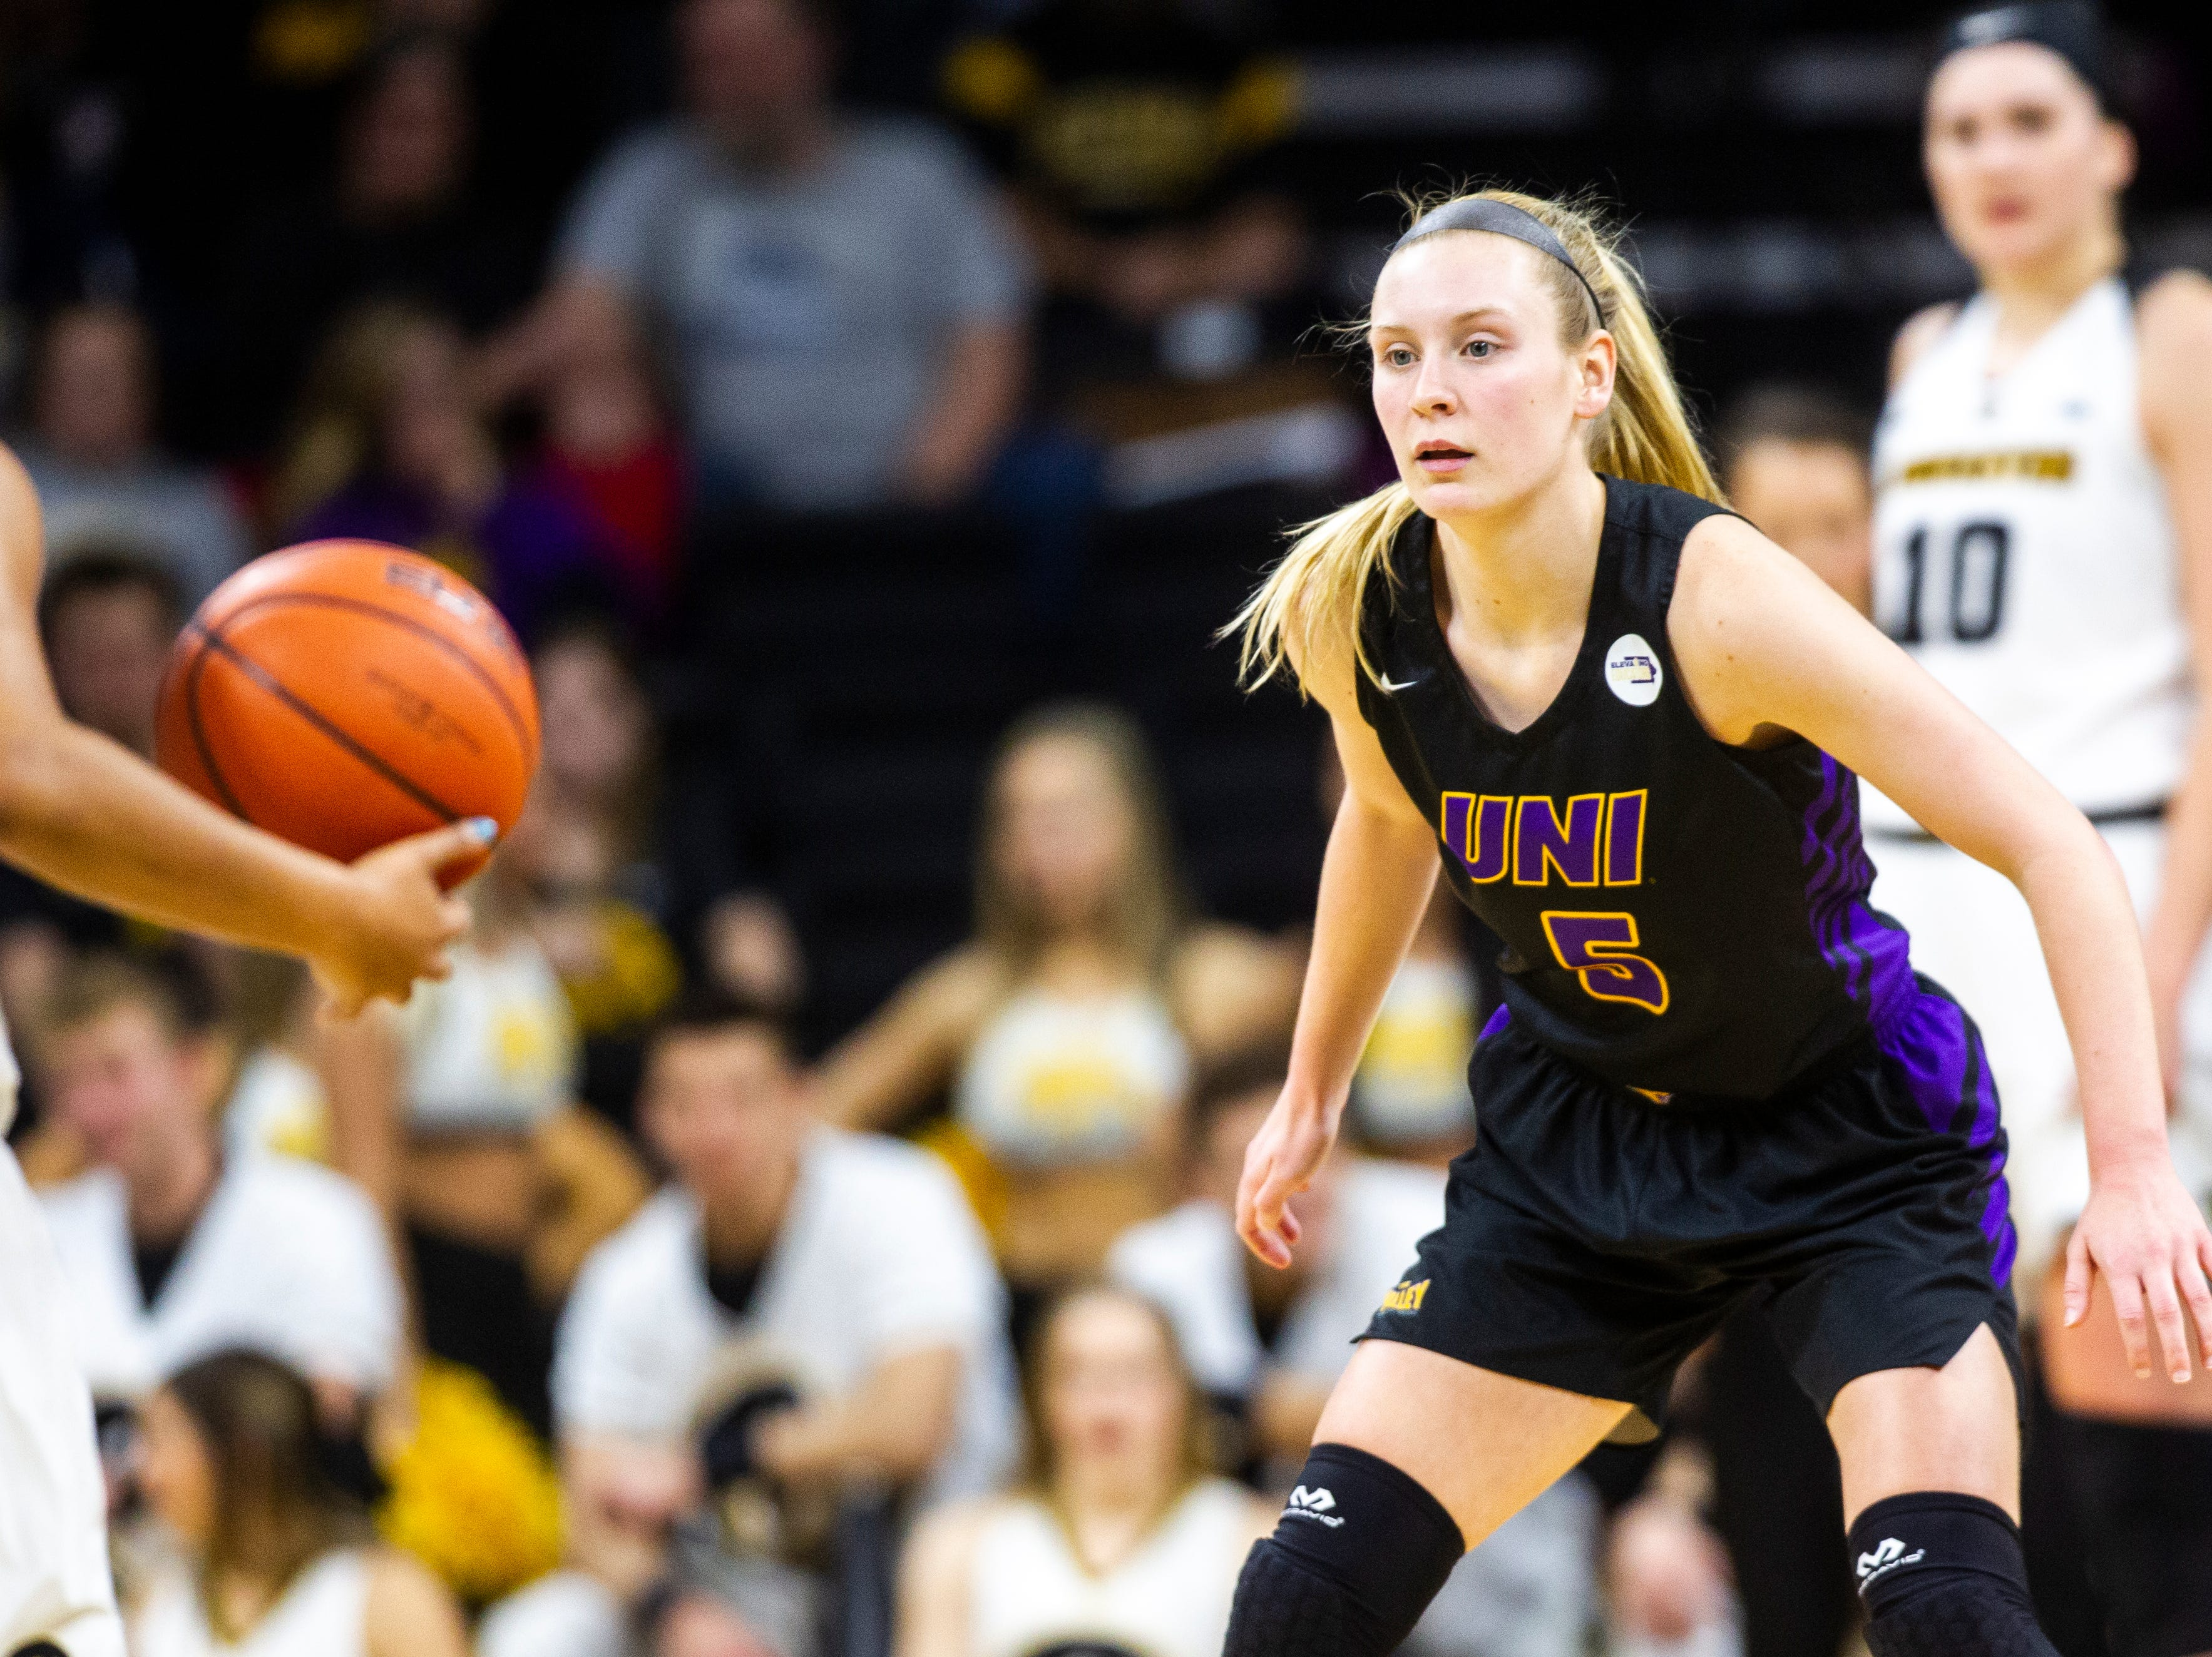 Northern Iowa guard Nicole Kroeger (5) drops back on defense during a NCAA women's basketball game on Sunday, Dec. 16, 2018, at Carver-Hawkeye Arena in Iowa City.